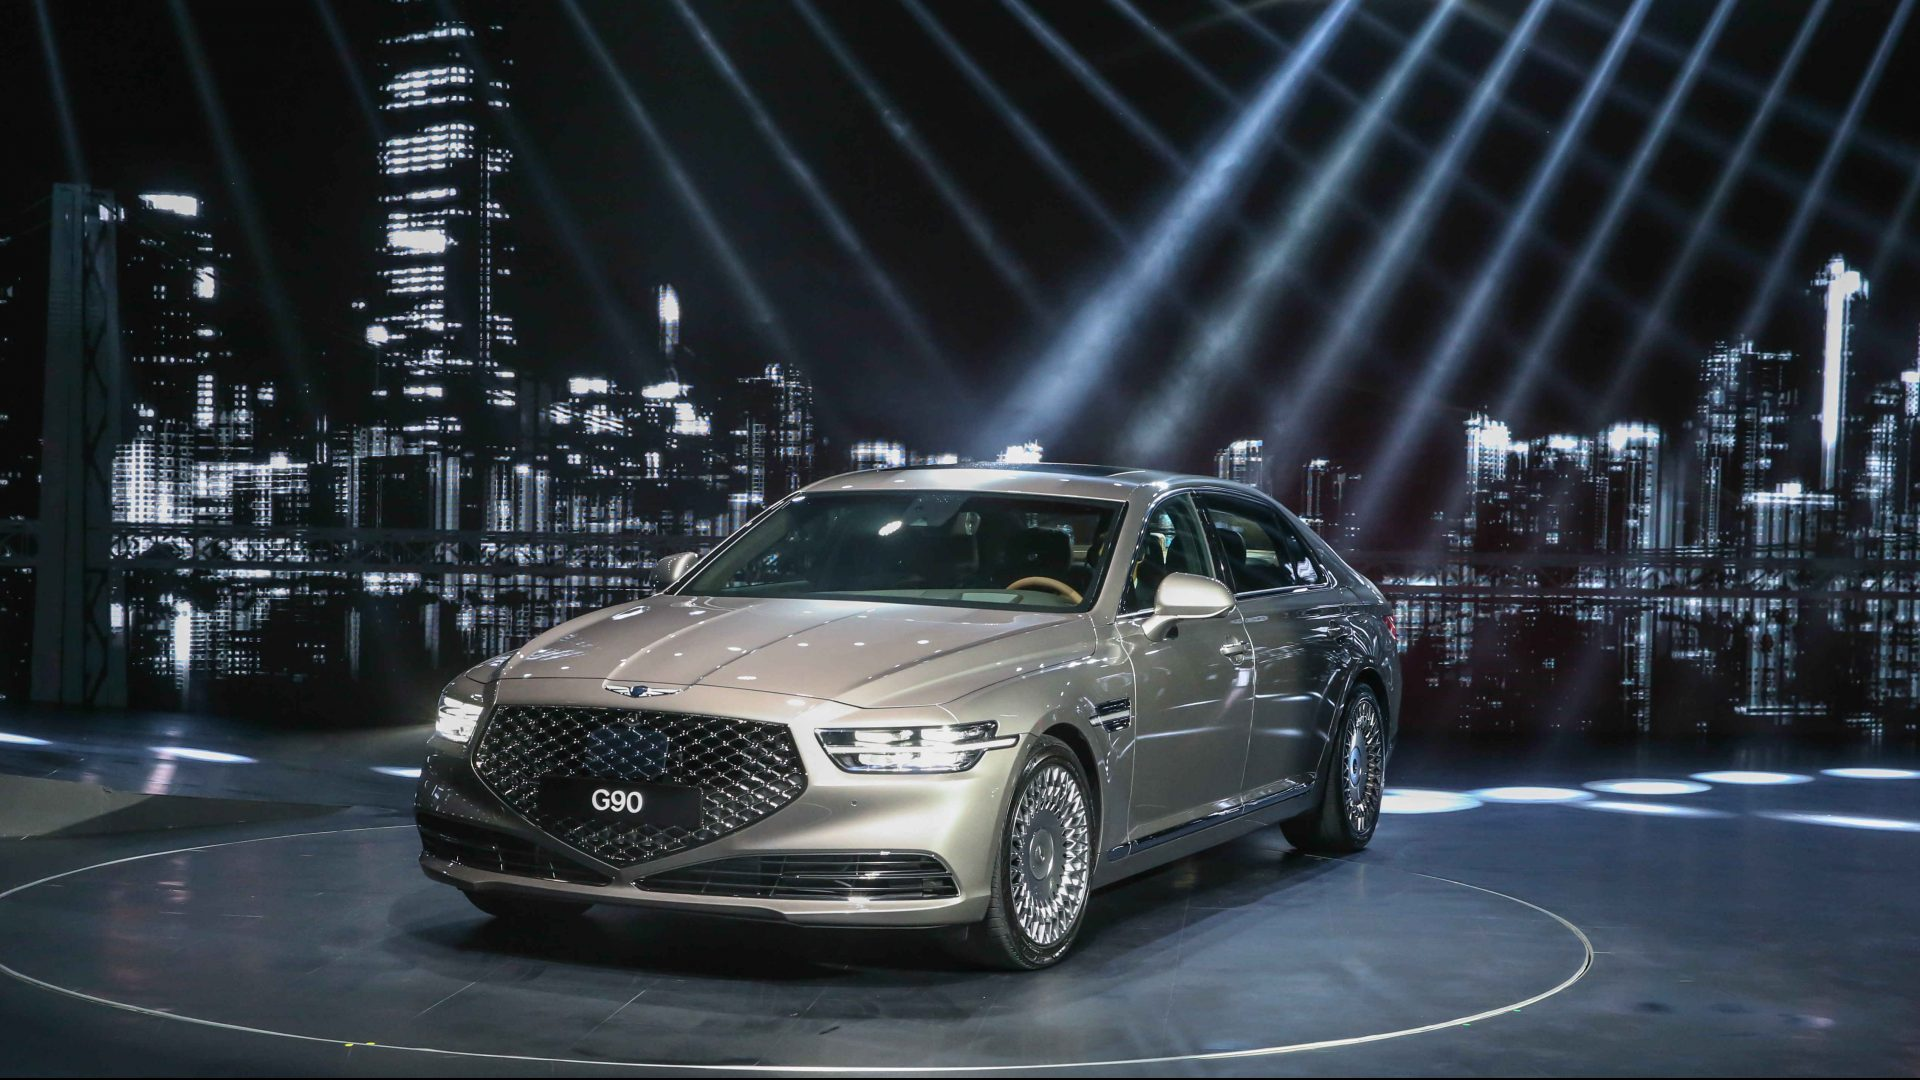 2020 Genesis G90 Sports A Whole New Look Does It Hit The